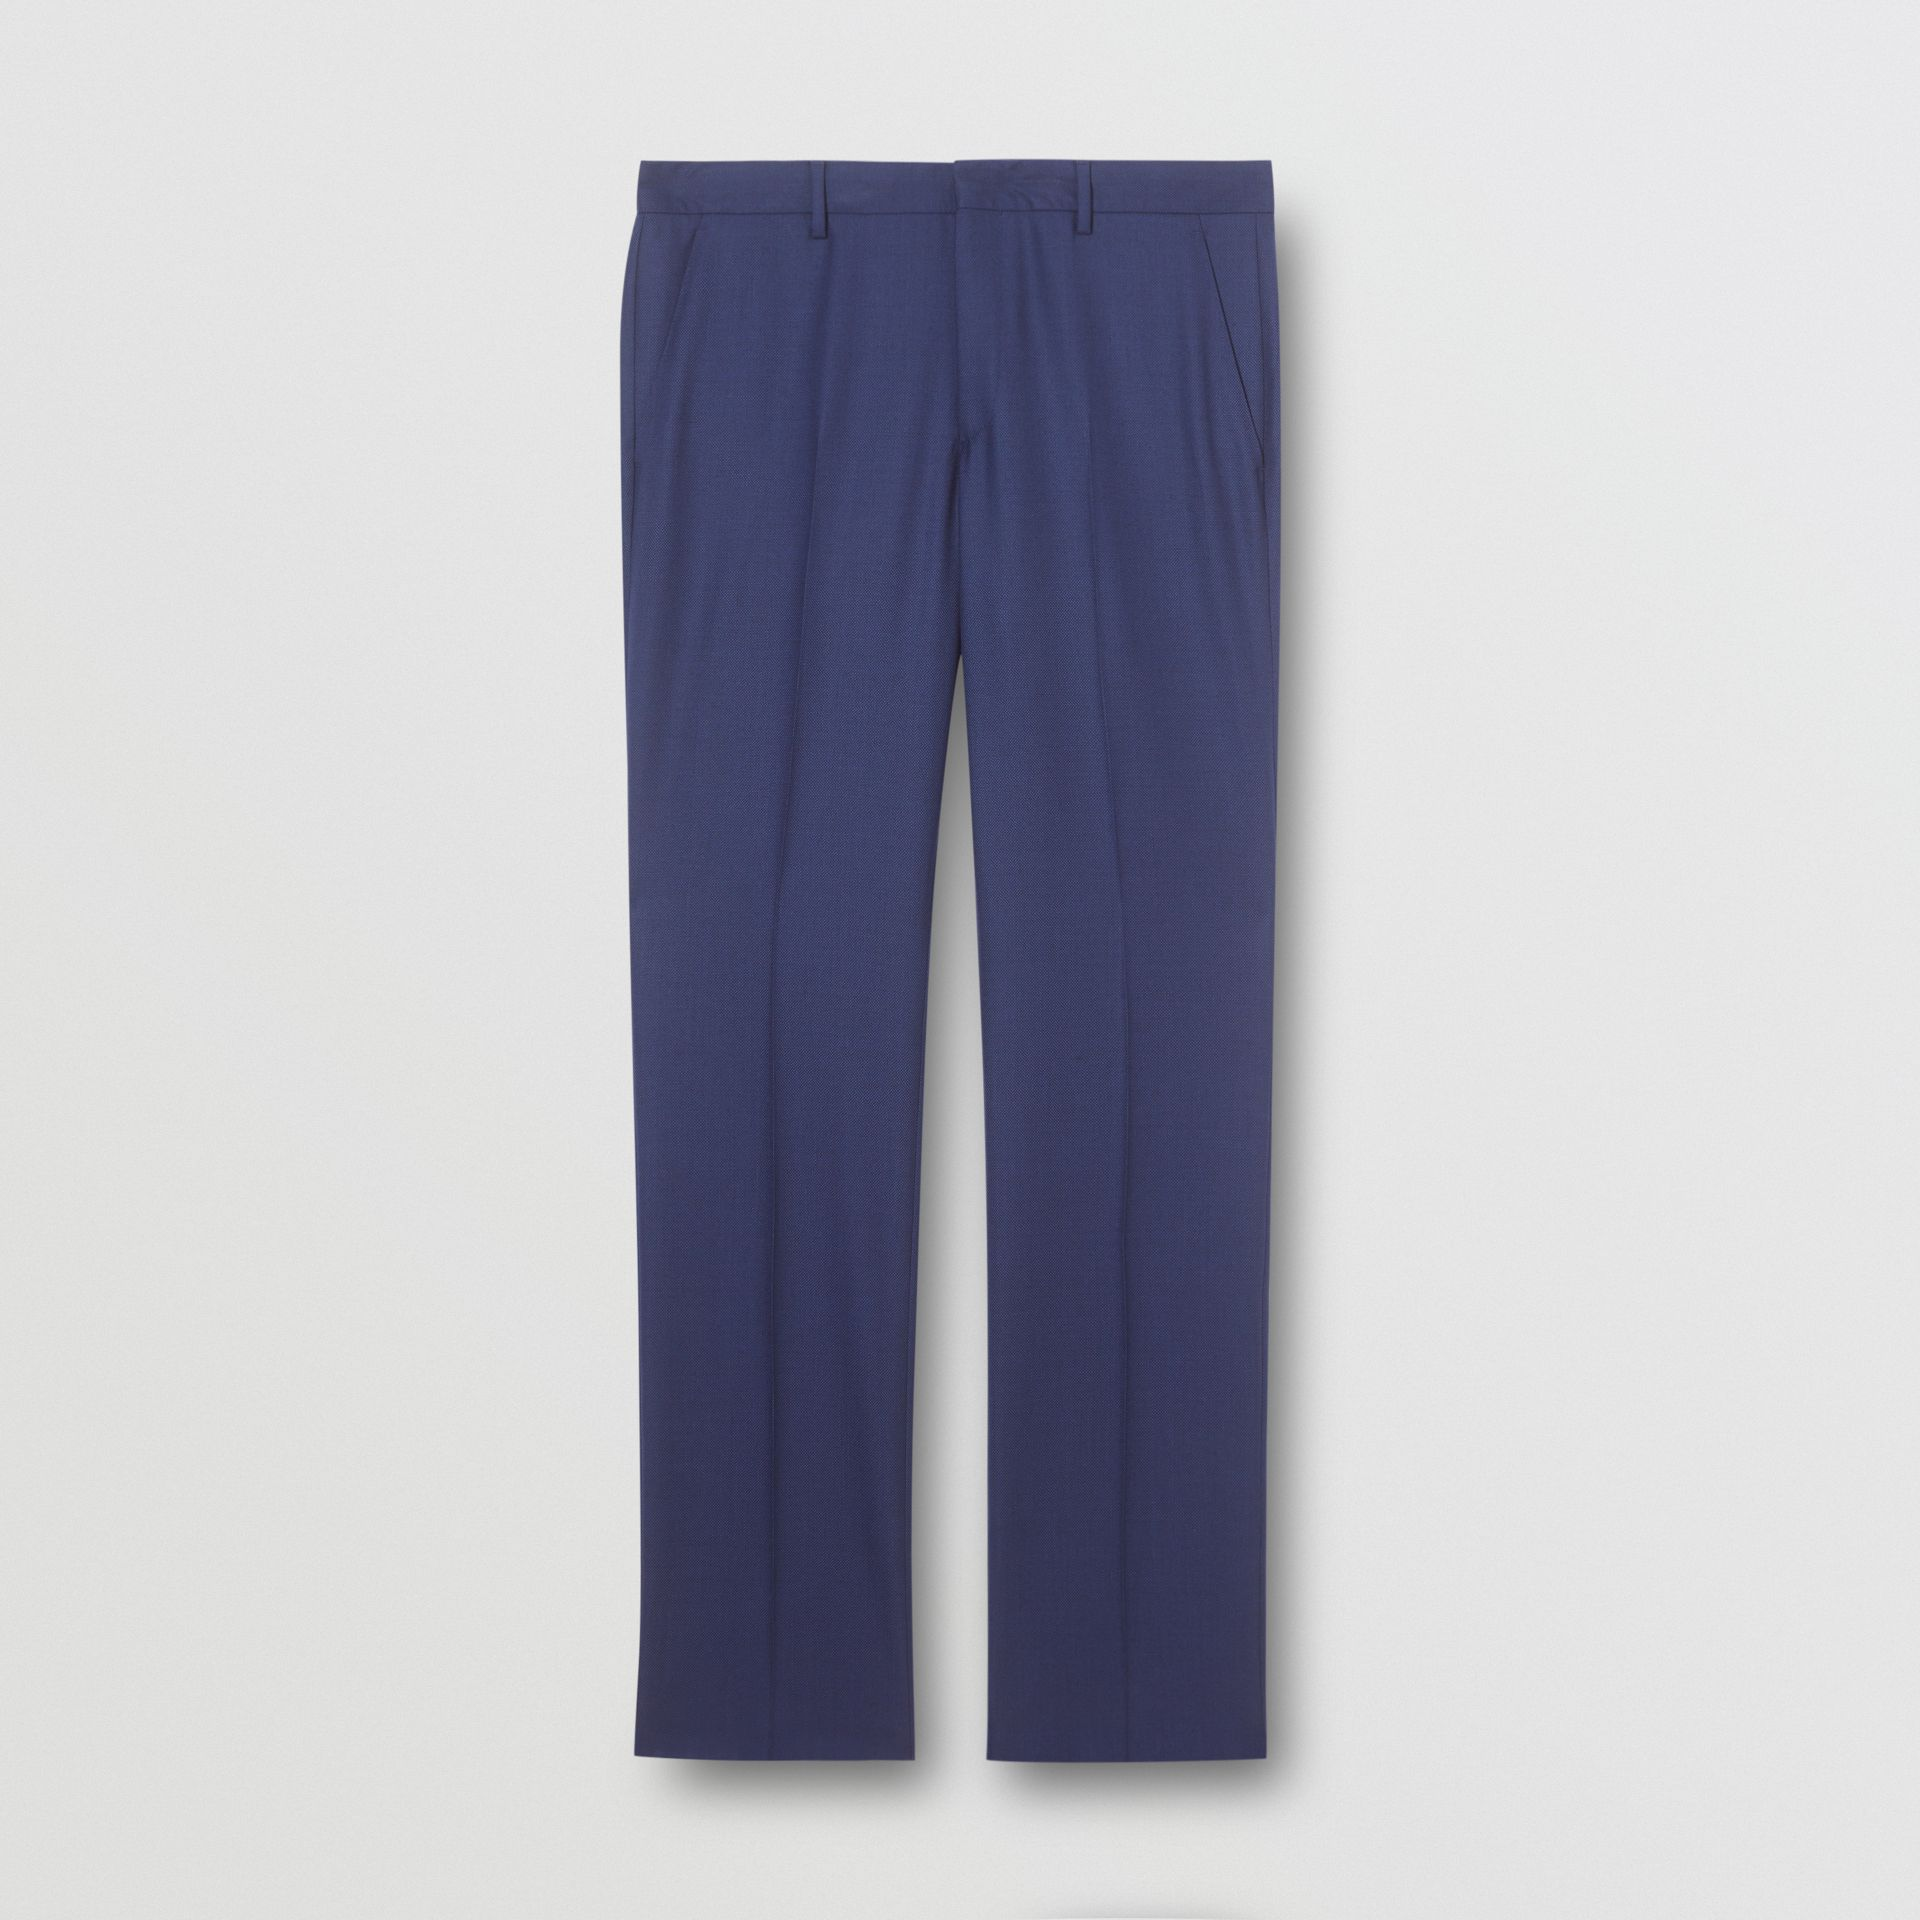 Classic Fit Birdseye Wool Tailored Trousers in Bright Navy - Men | Burberry Hong Kong S.A.R - gallery image 3